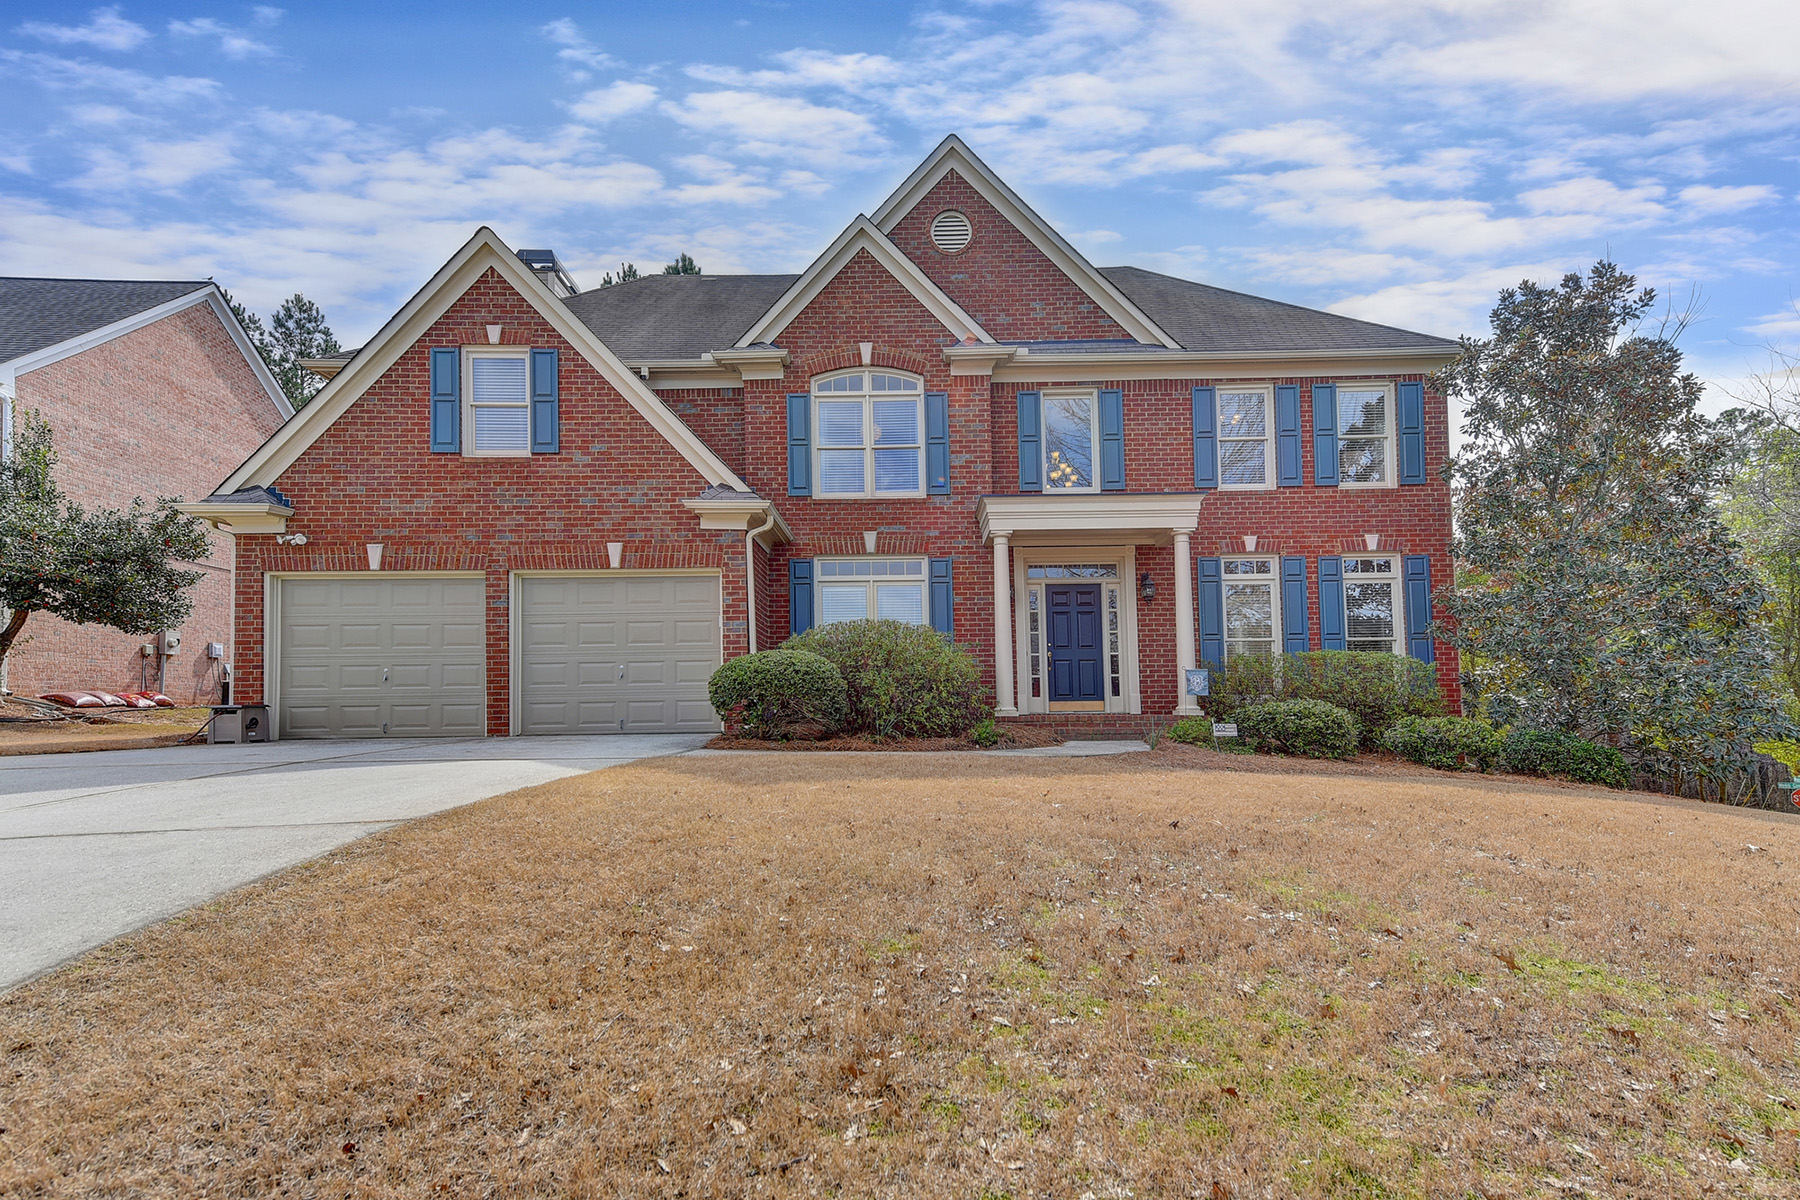 Single Family Homes for Sale at Move-in Ready John Wieland Resale In Brookwood School District! 2472 Cranmore Court Snellville, Georgia 30078 United States